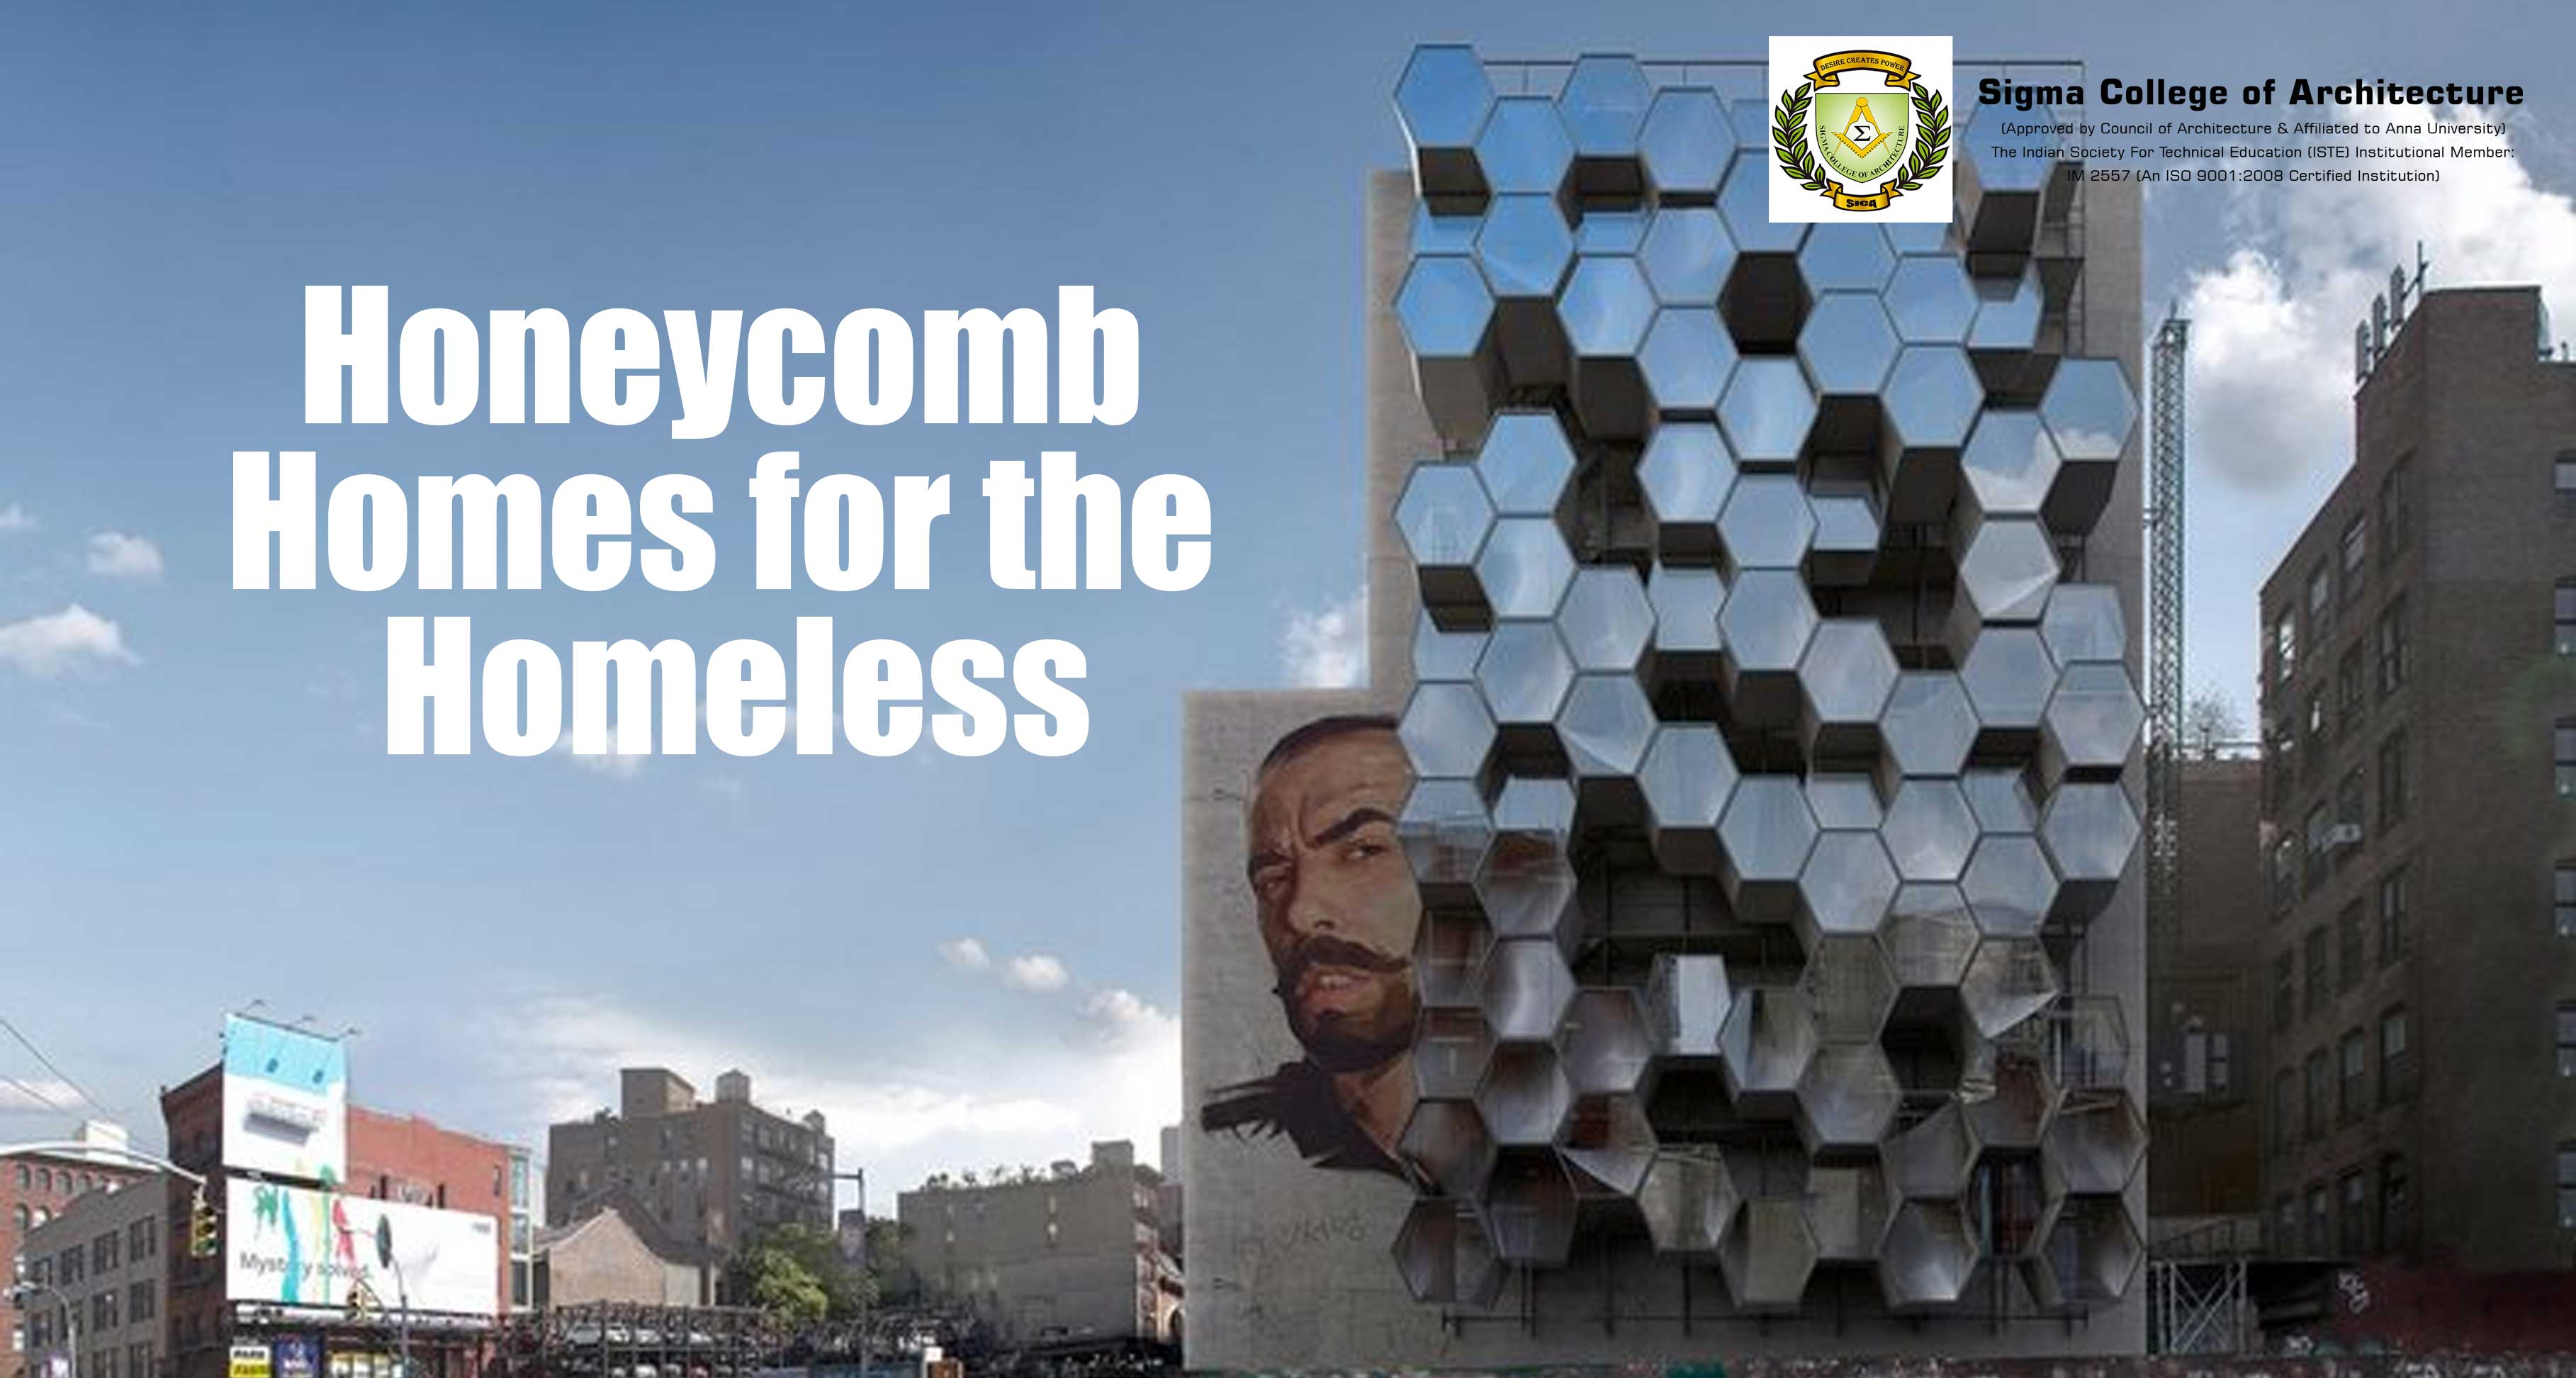 Honeycomb Homes for the Homeless